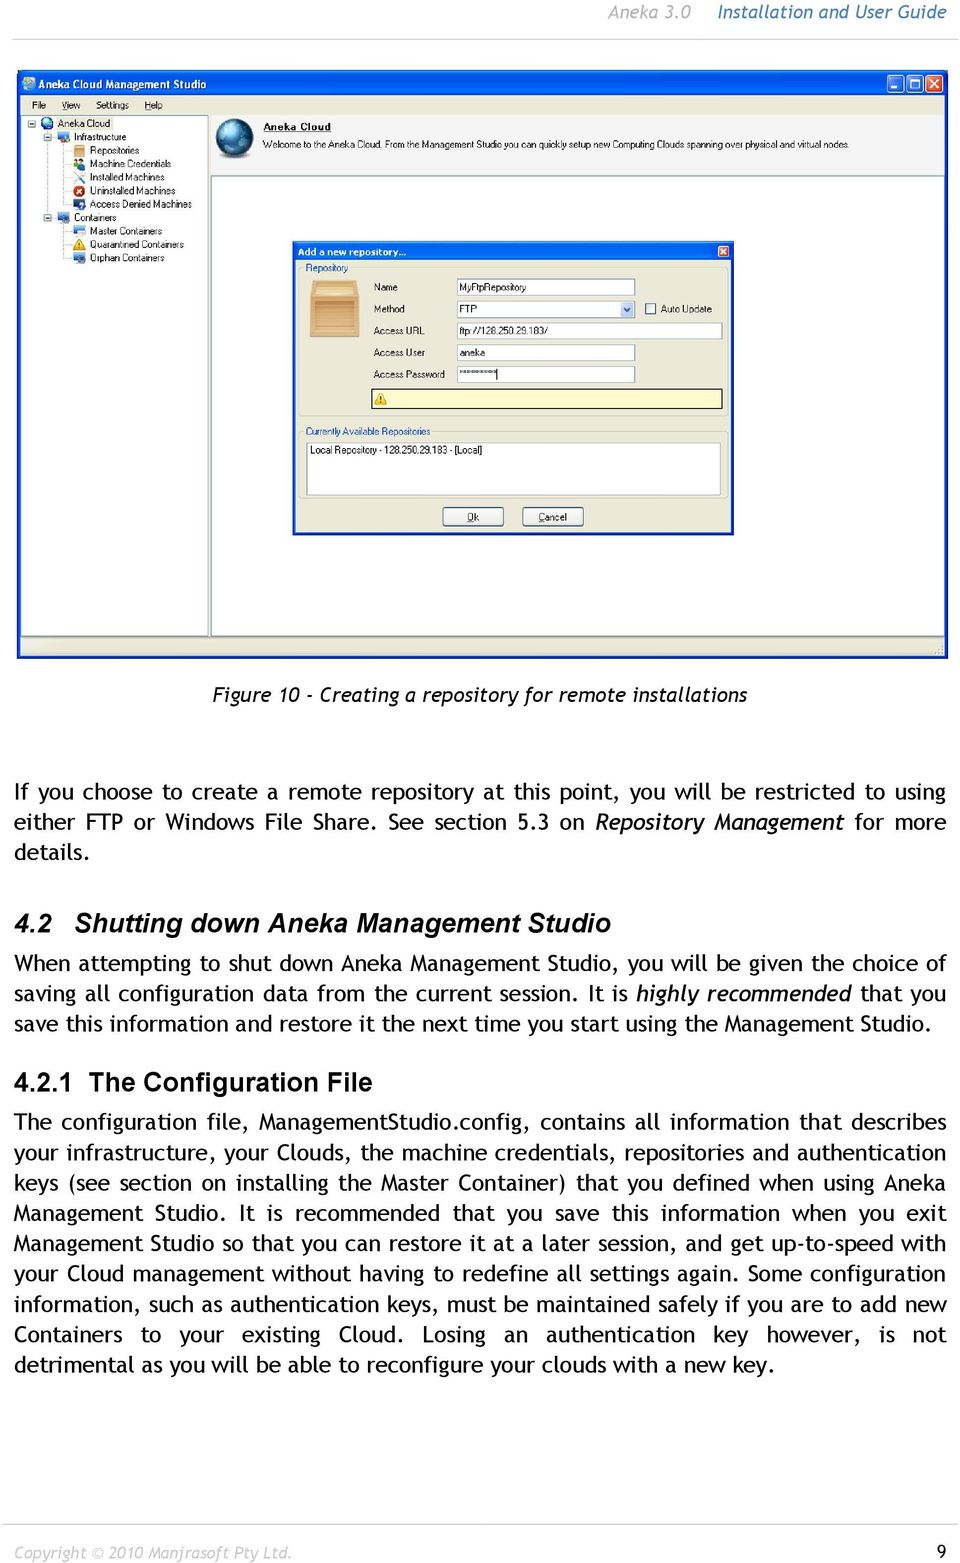 2 Shutting down Aneka Management Studio When attempting to shut down Aneka Management Studio, you will be given the choice of saving all configuration data from the current session.